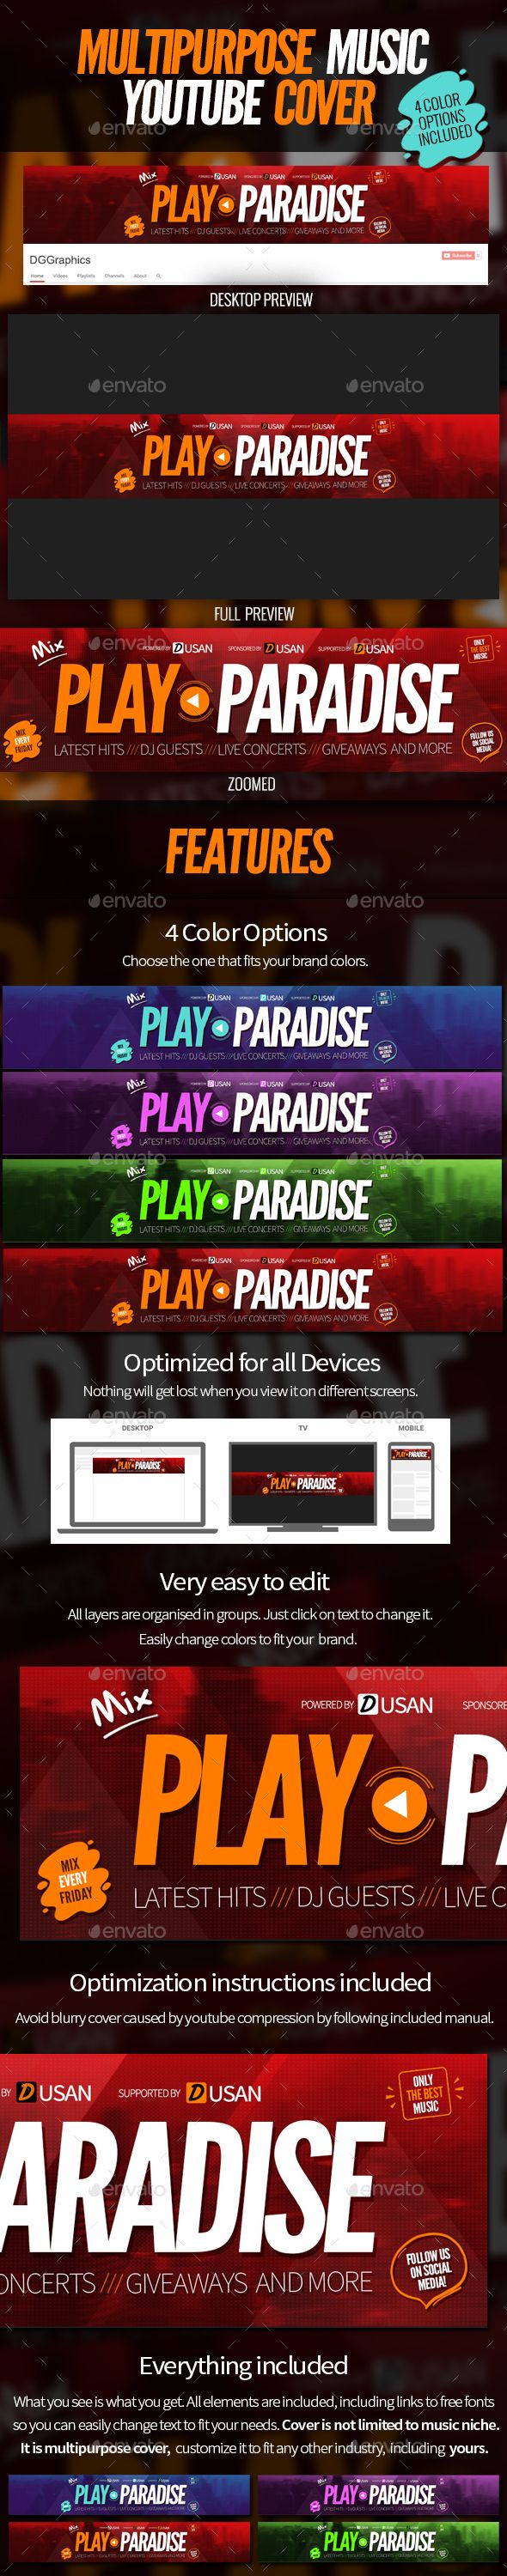 223 best YouTube Backgrounds images on Pinterest